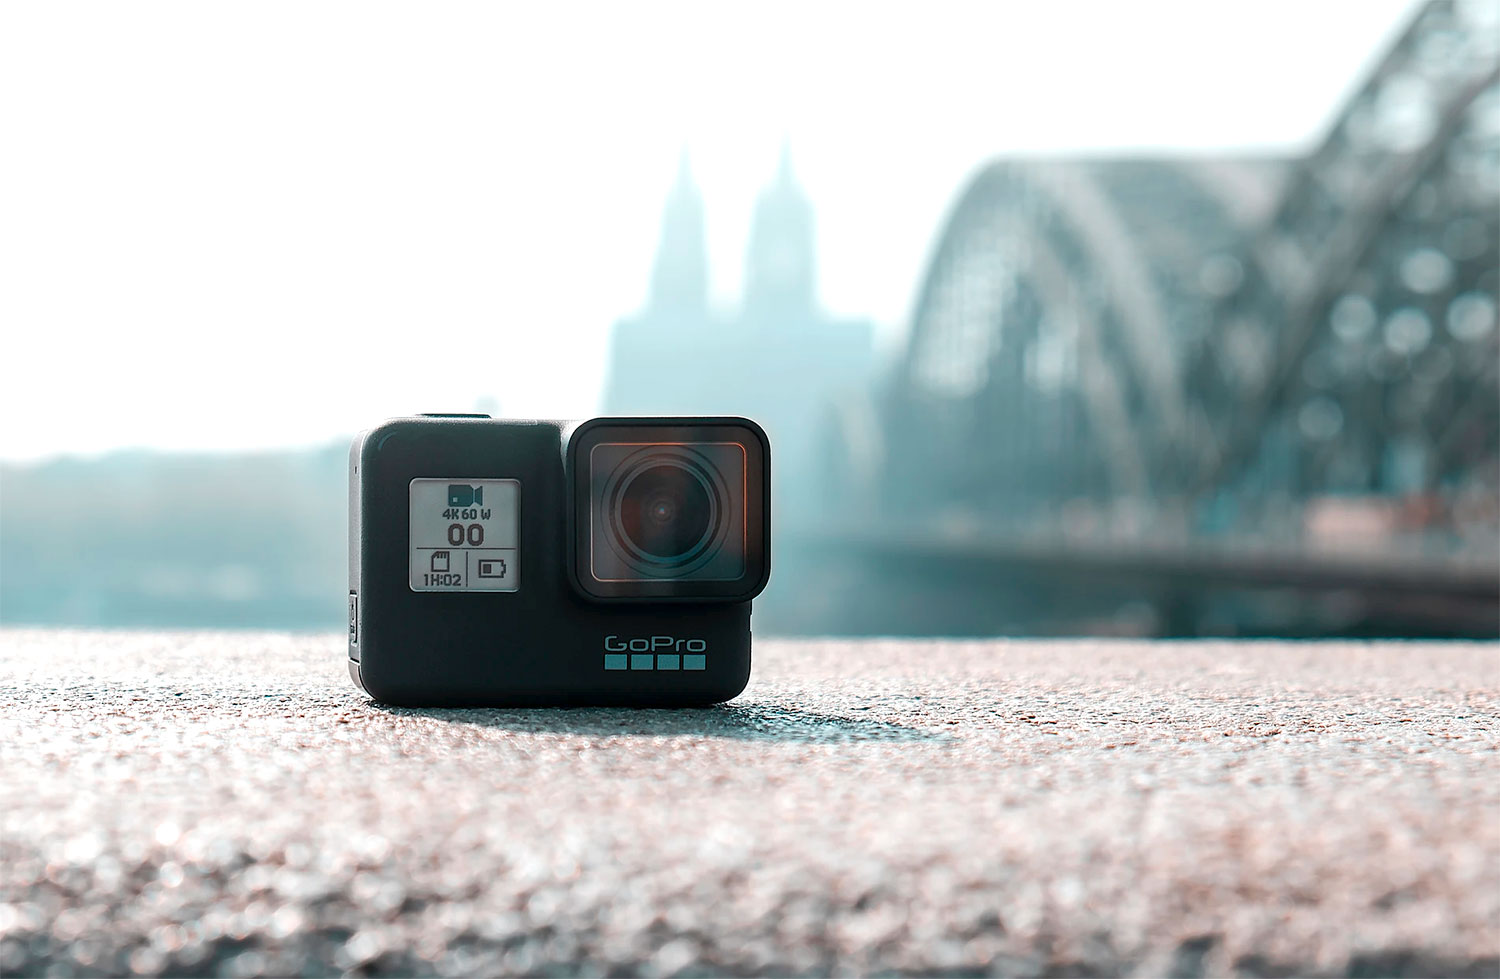 5 CommonProblemswith GoPro Video and How to Fix It